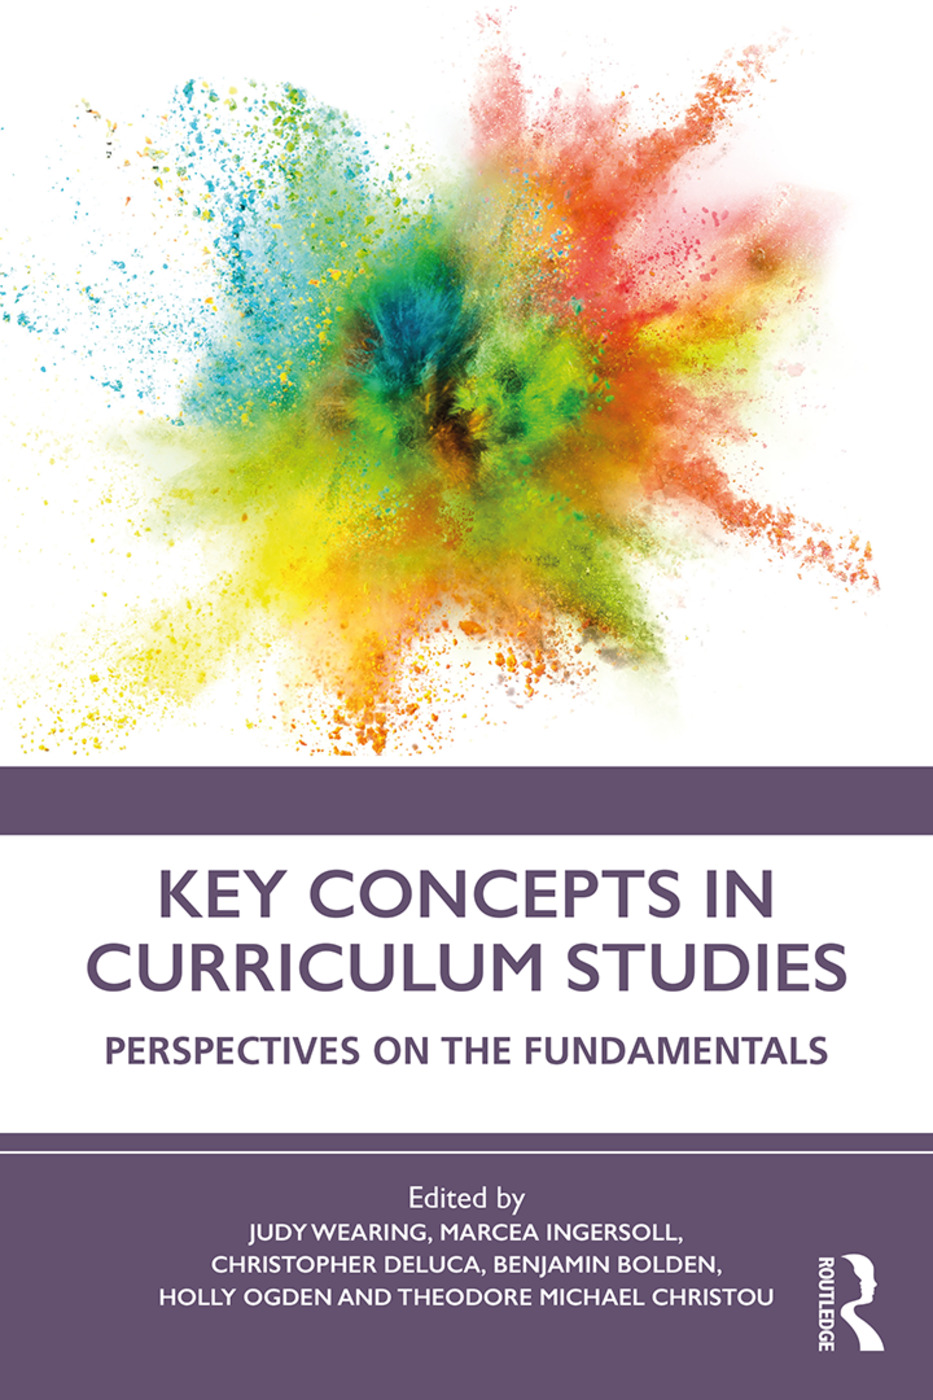 Key Concepts in Curriculum Studies: Perspectives on the Fundamentals book cover